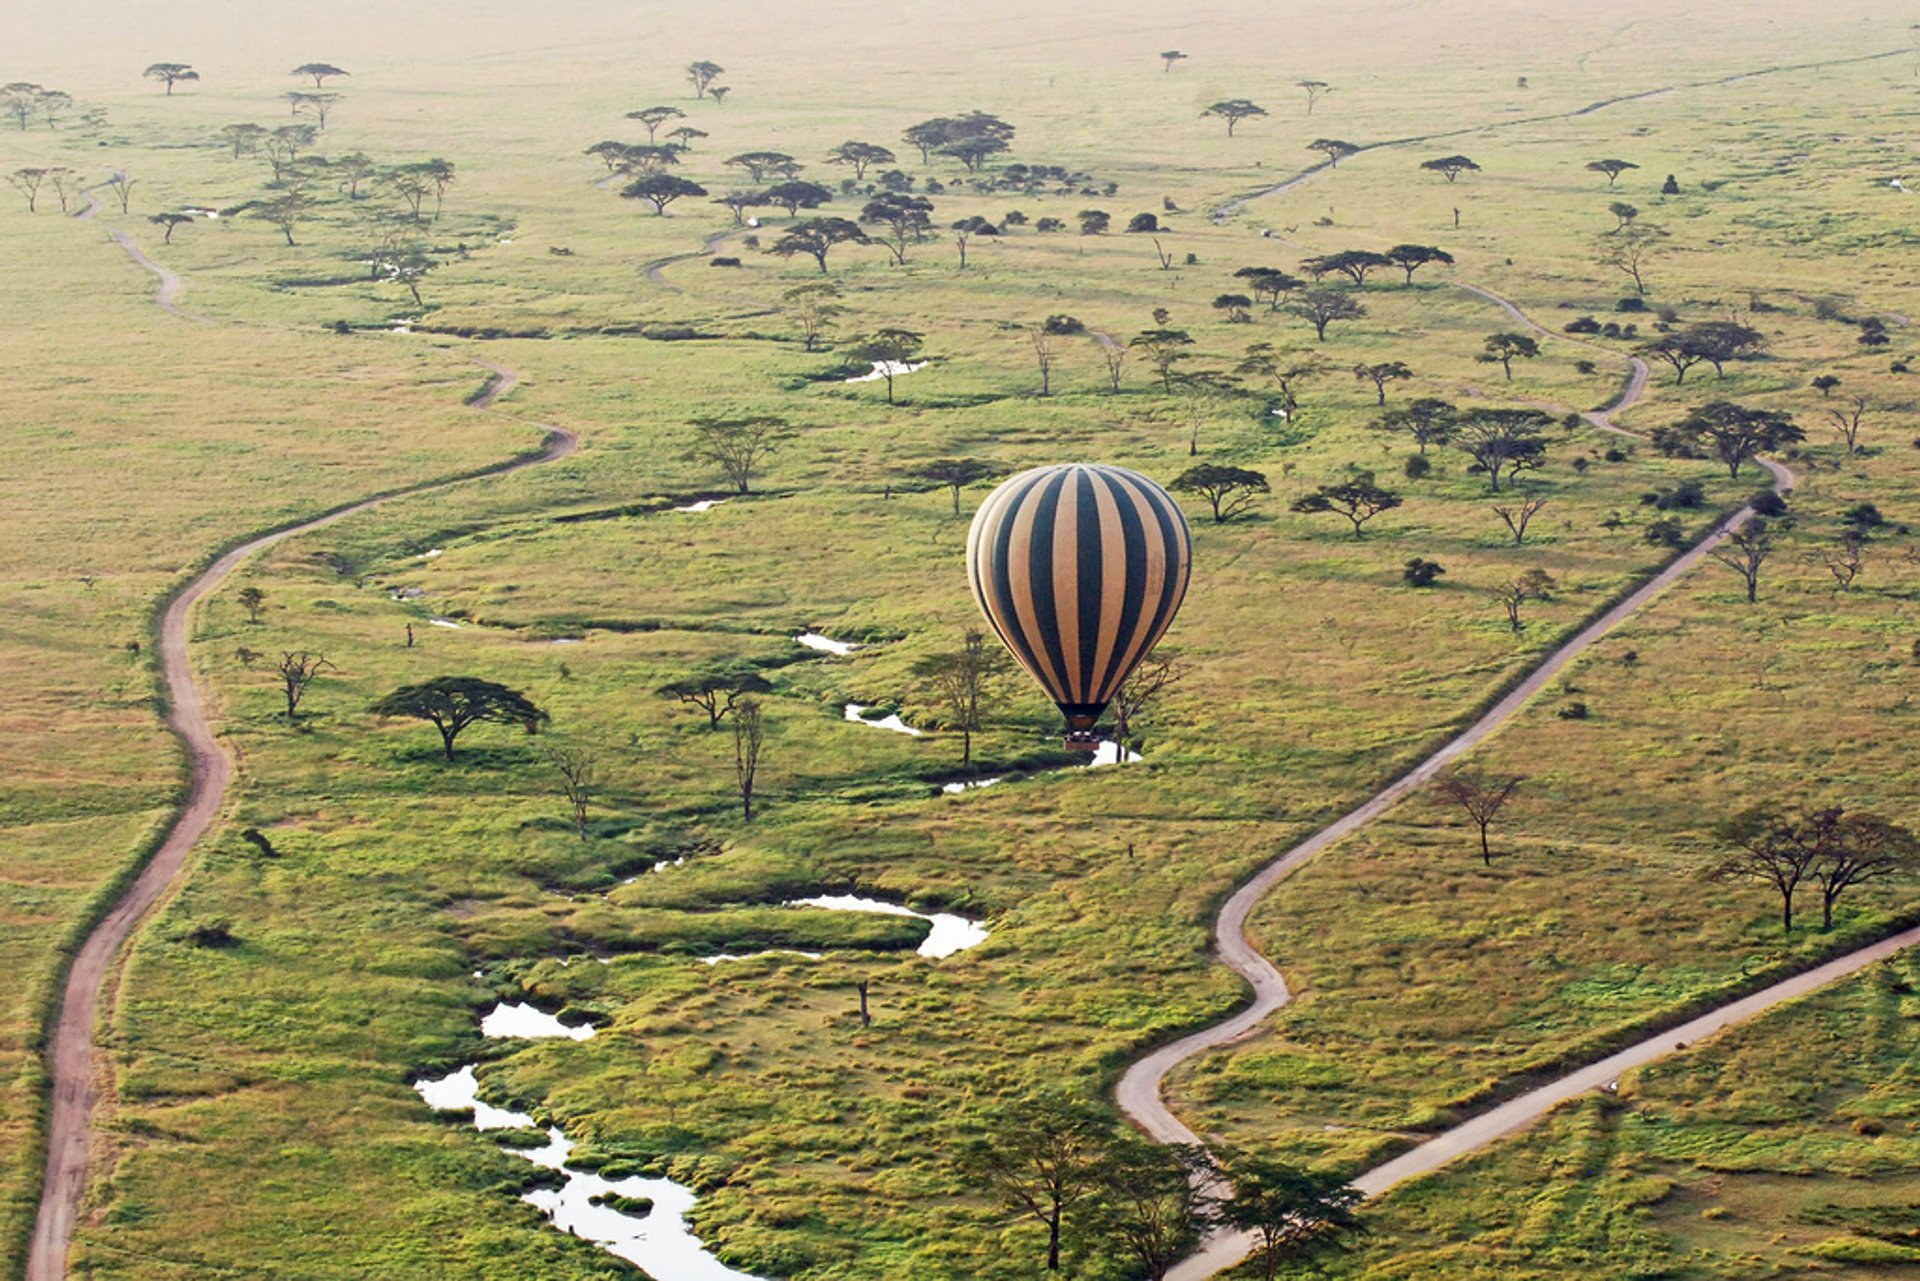 Best time to see Safari in Tanzania 2019